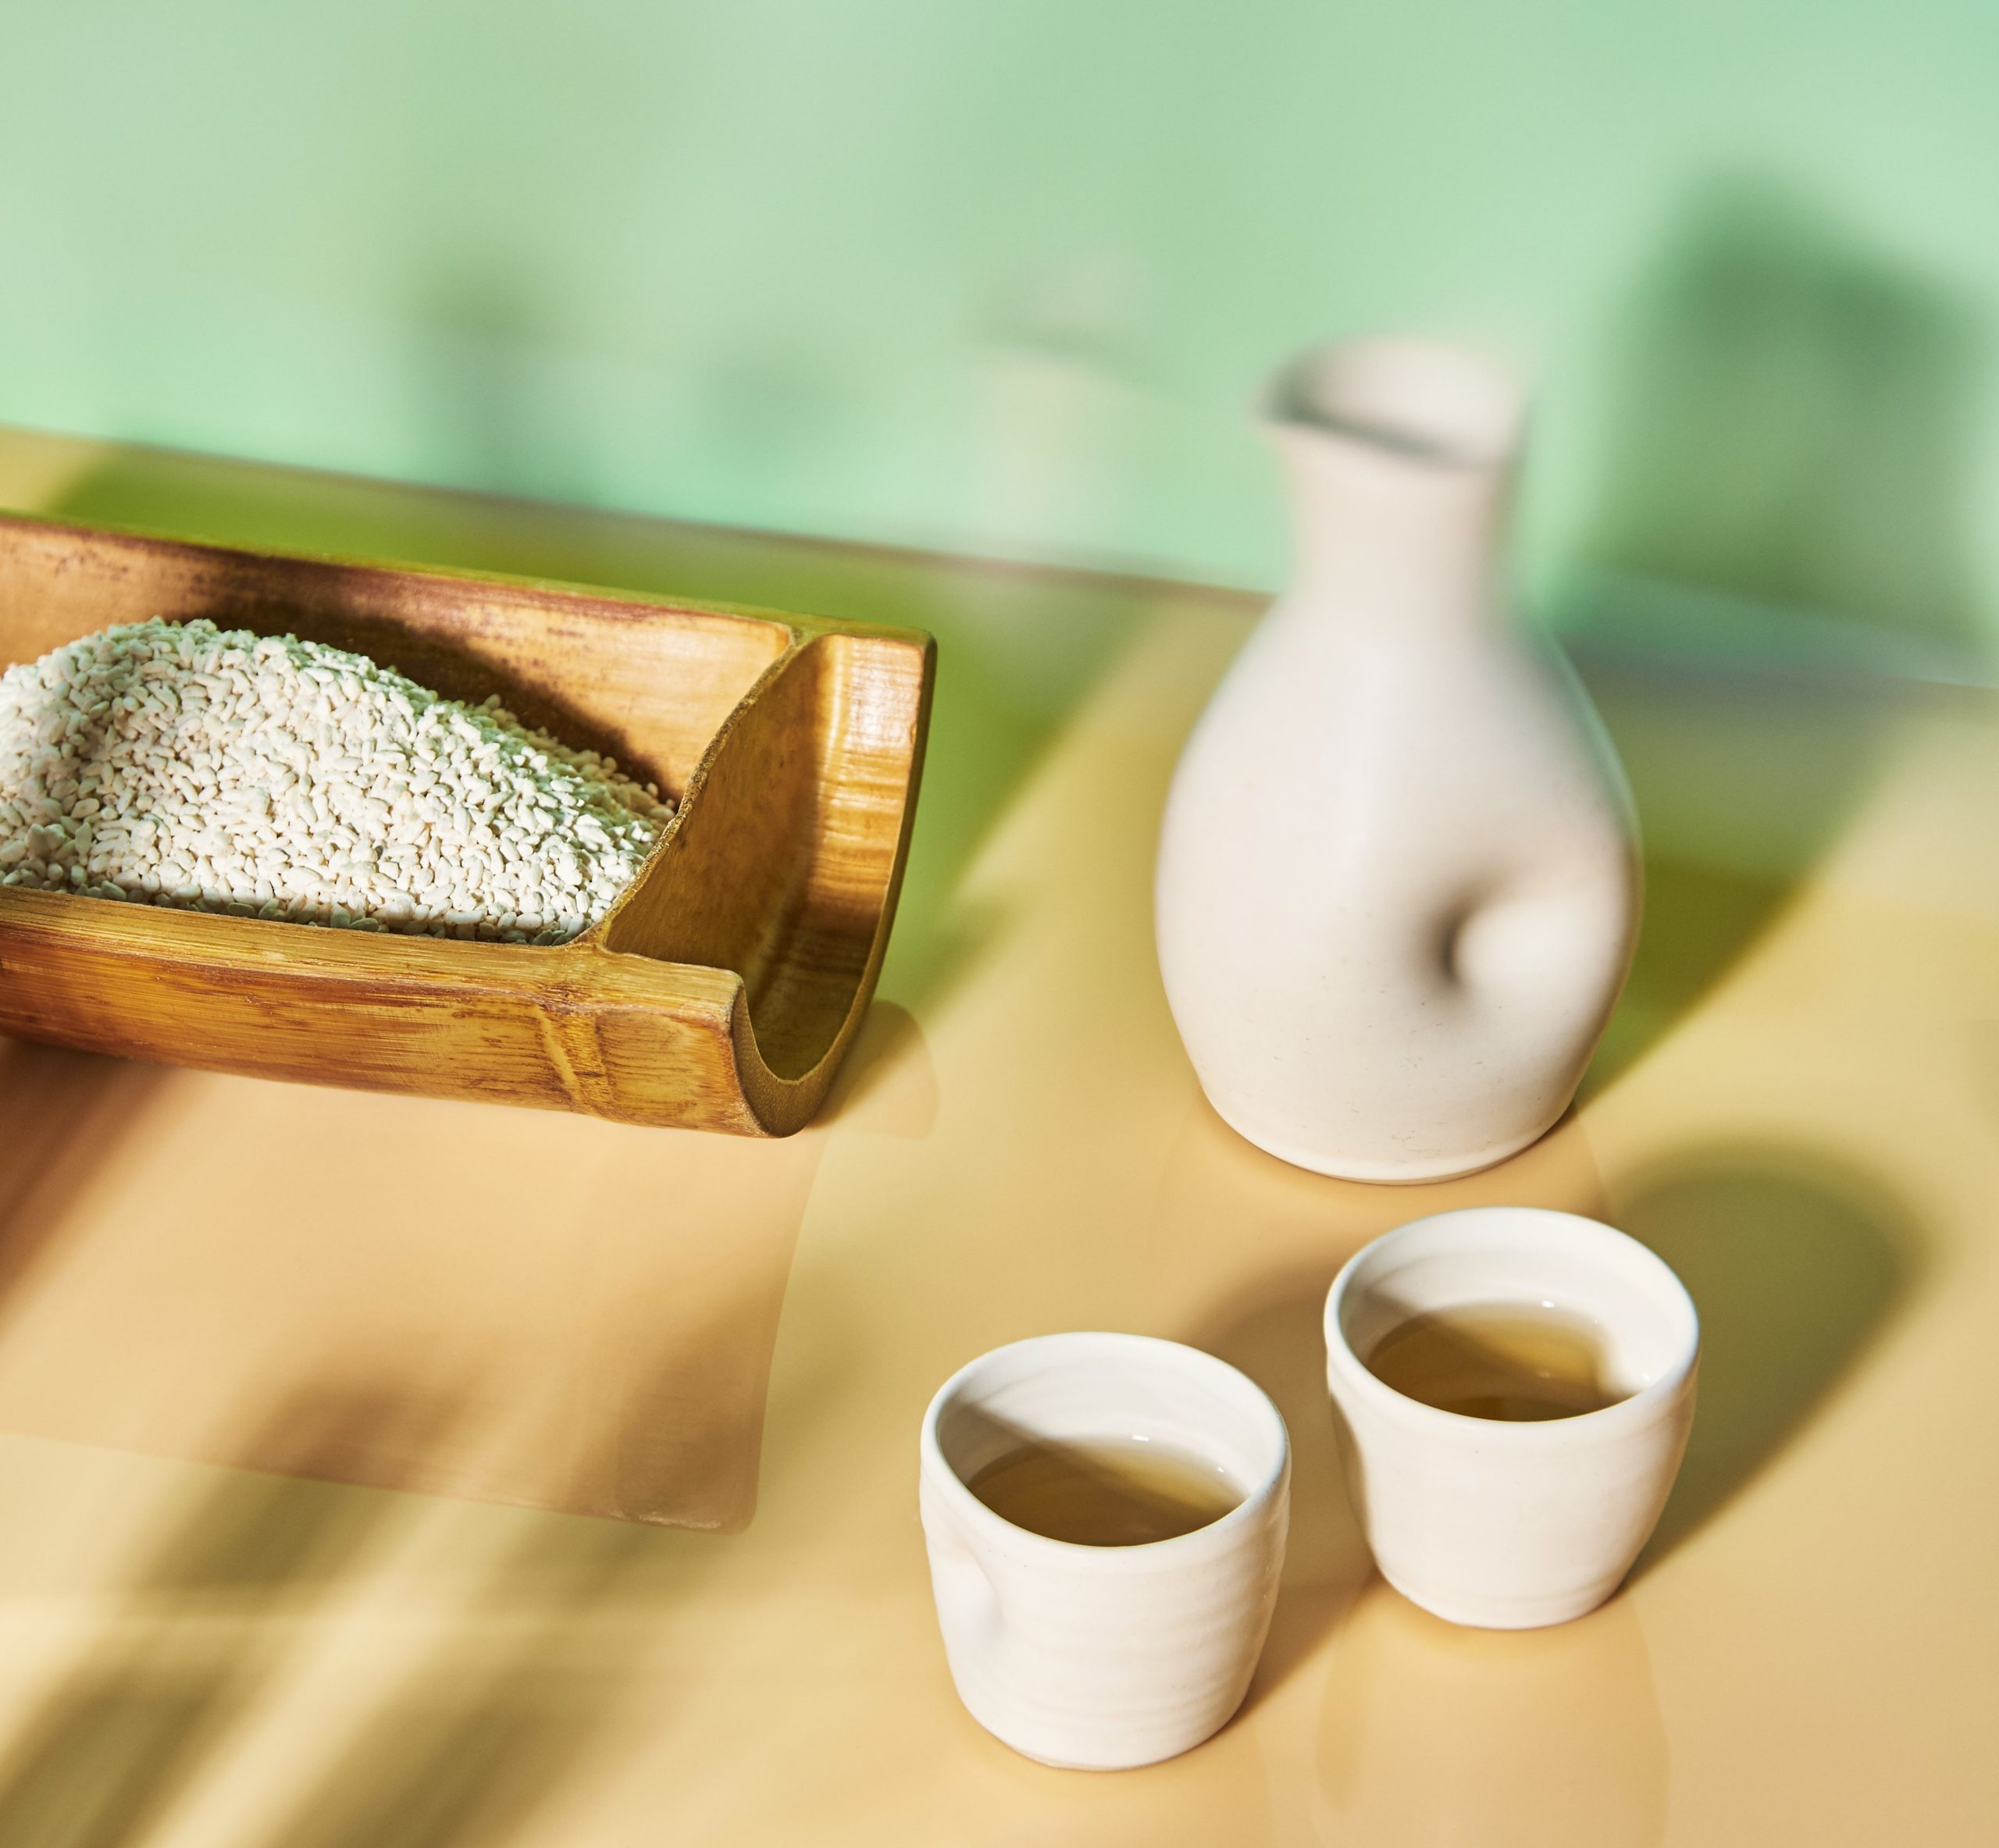 Non Alcoholic Drinks in Sake Carafe and Cups